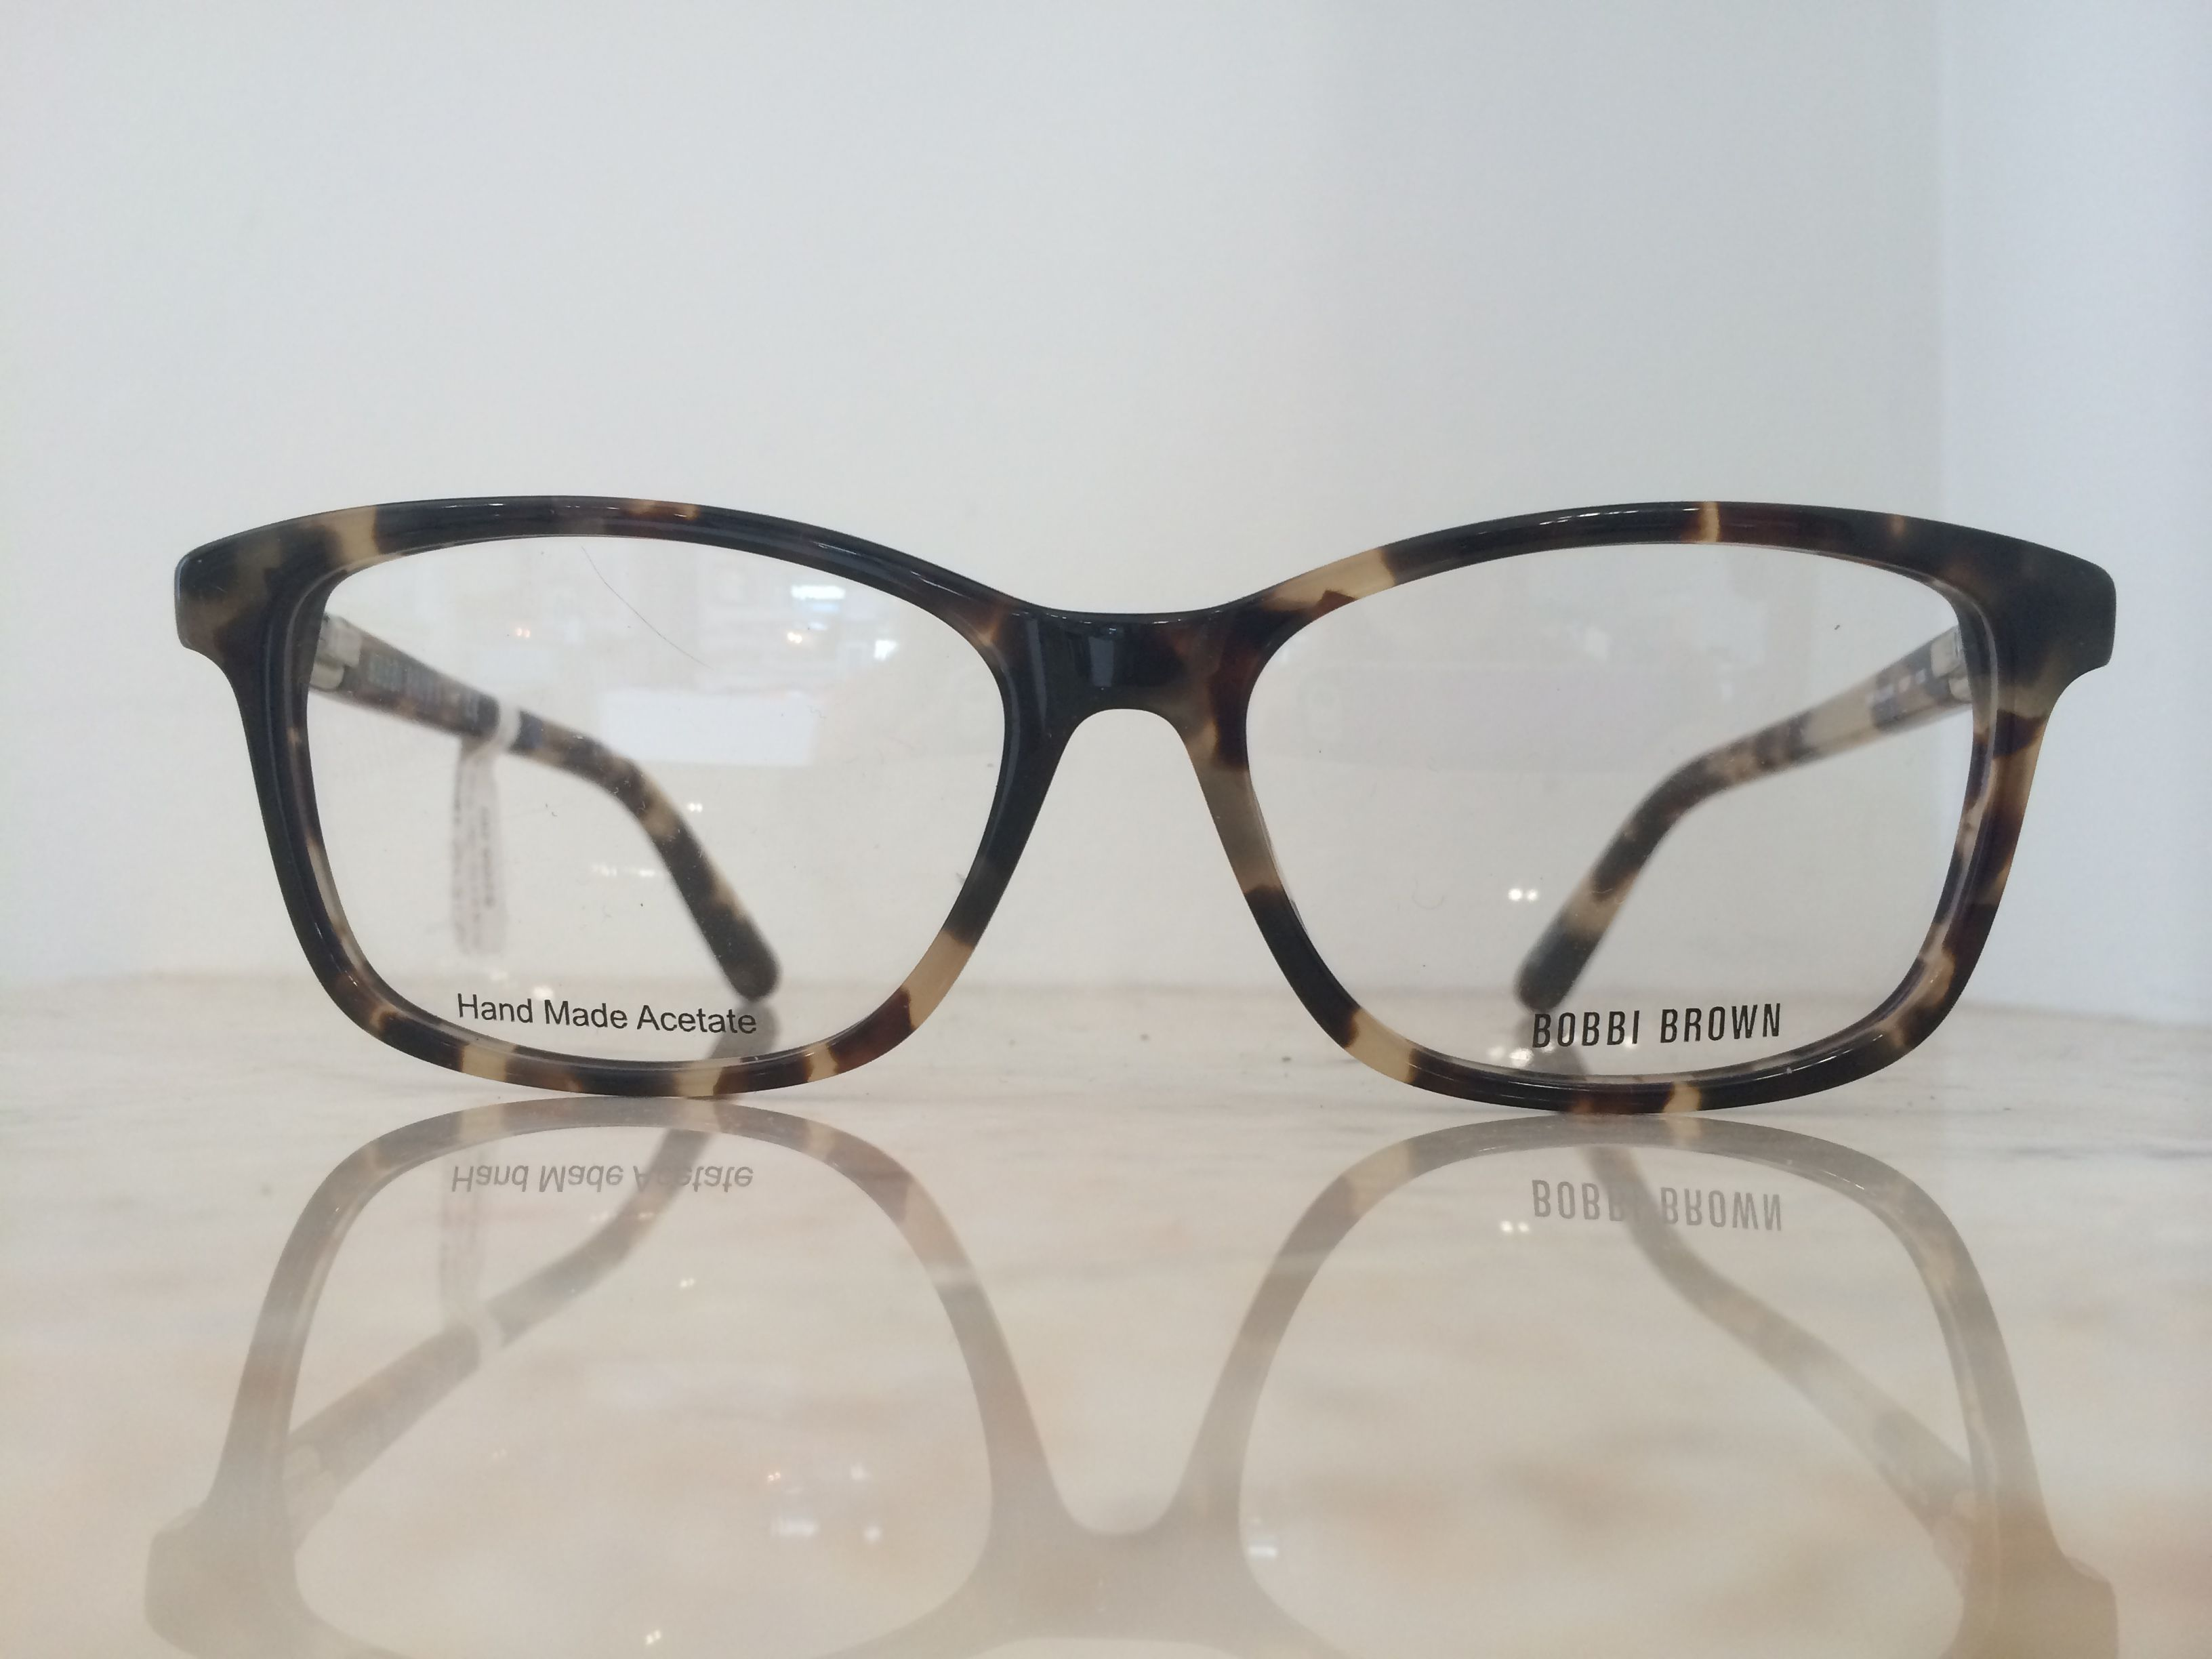 66b4f563fb The Alexis. Find this Pin and more on Bobbi Brown Eyewear ...